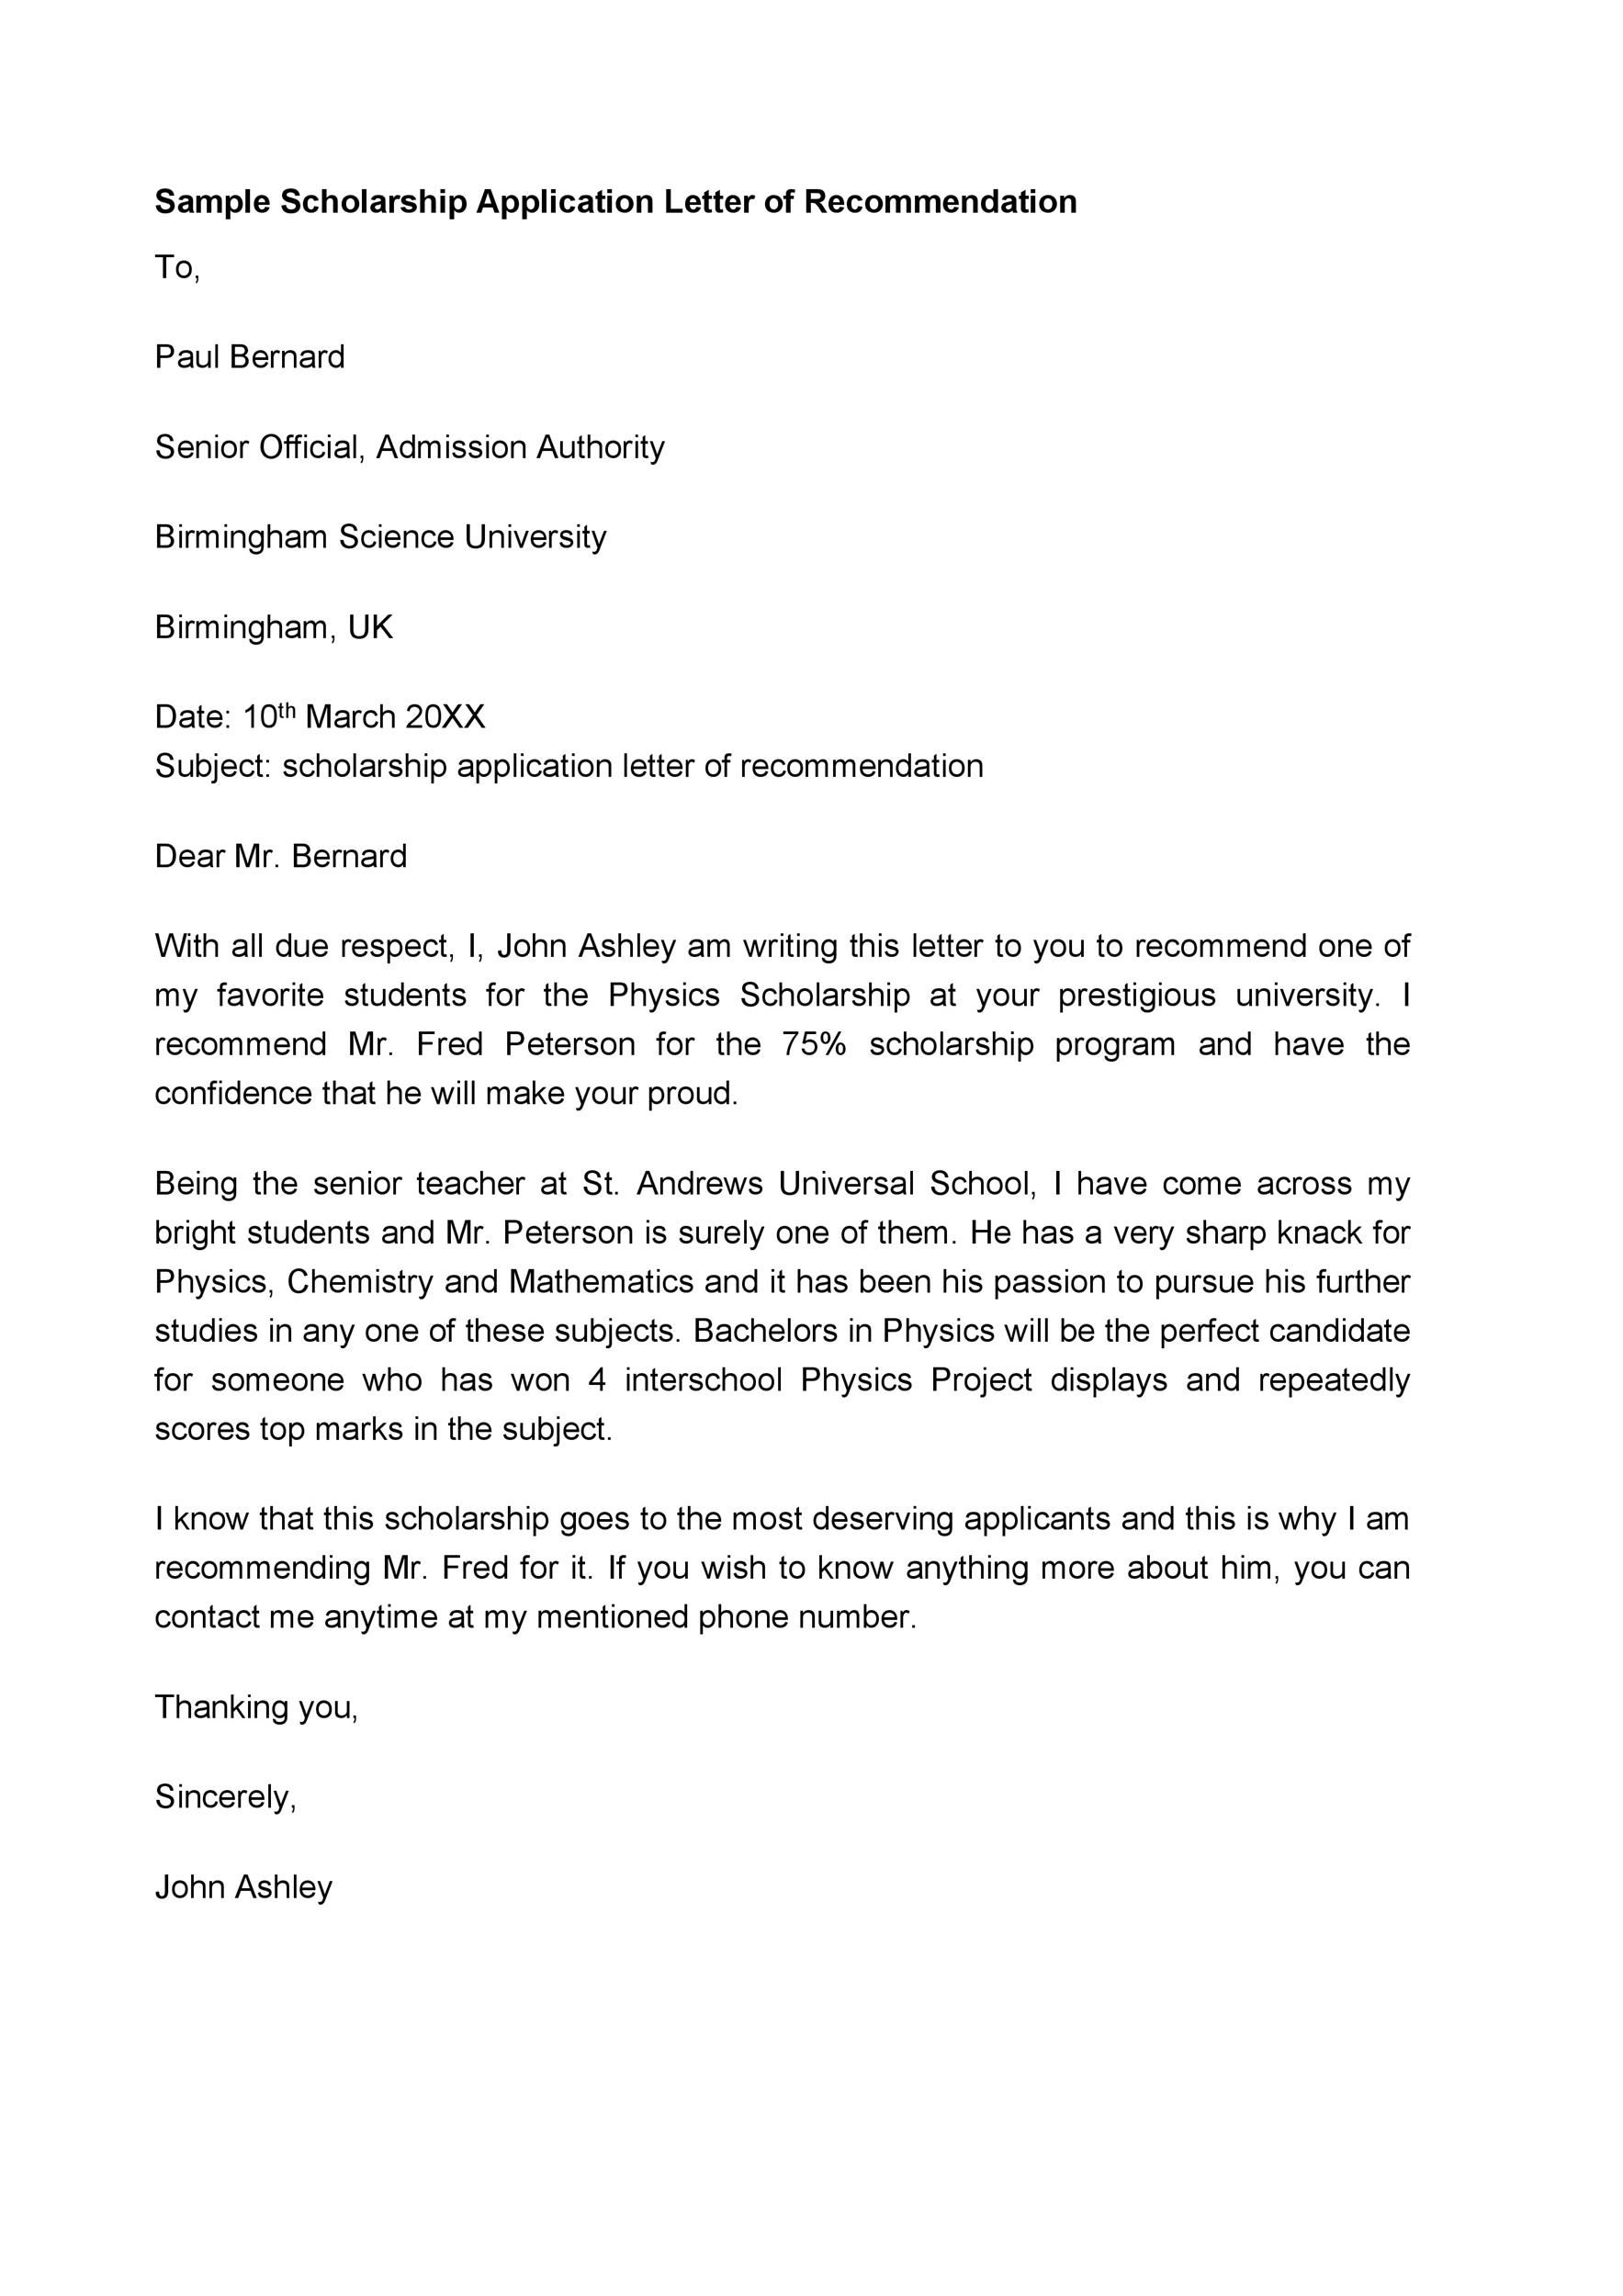 Sample Letter Of Recommendations For Scholarships from www.addictionary.org